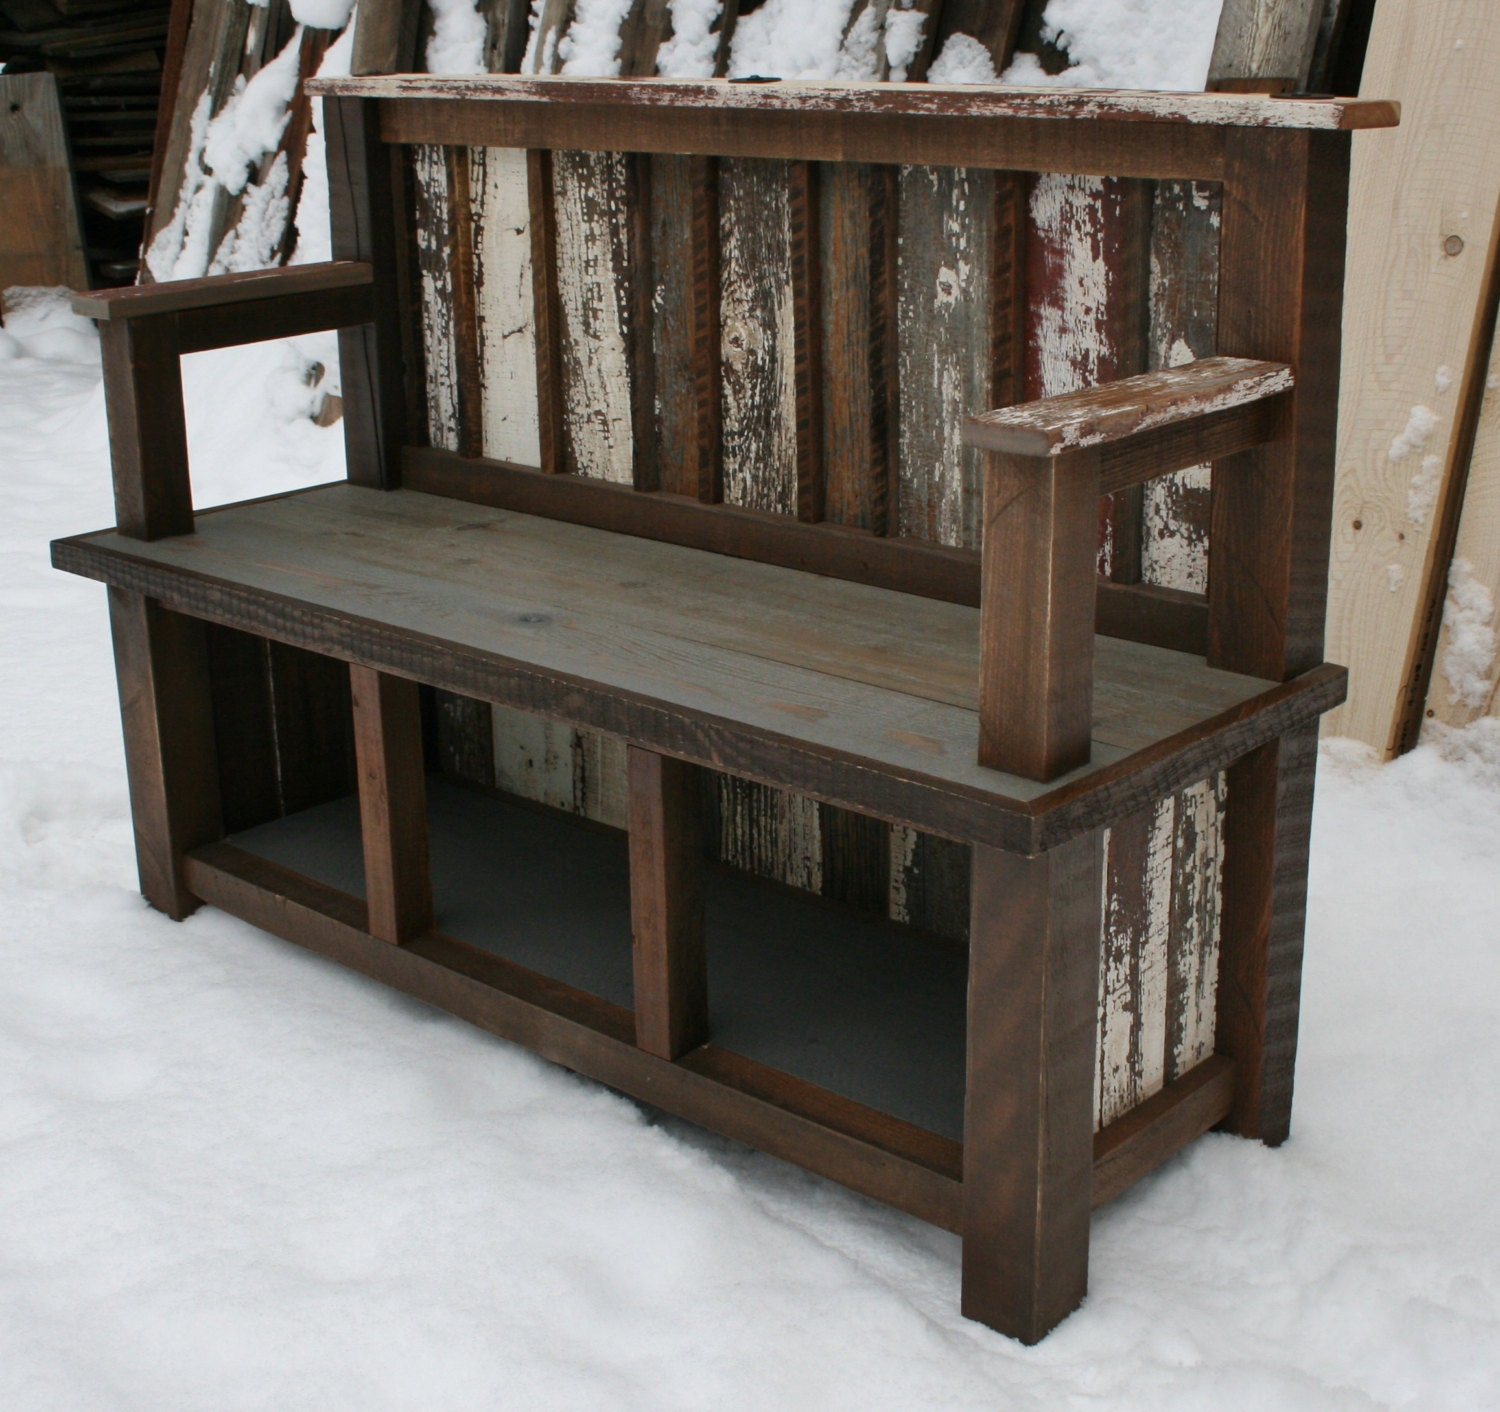 Long Wooden Bench With A Back Almirah Beds